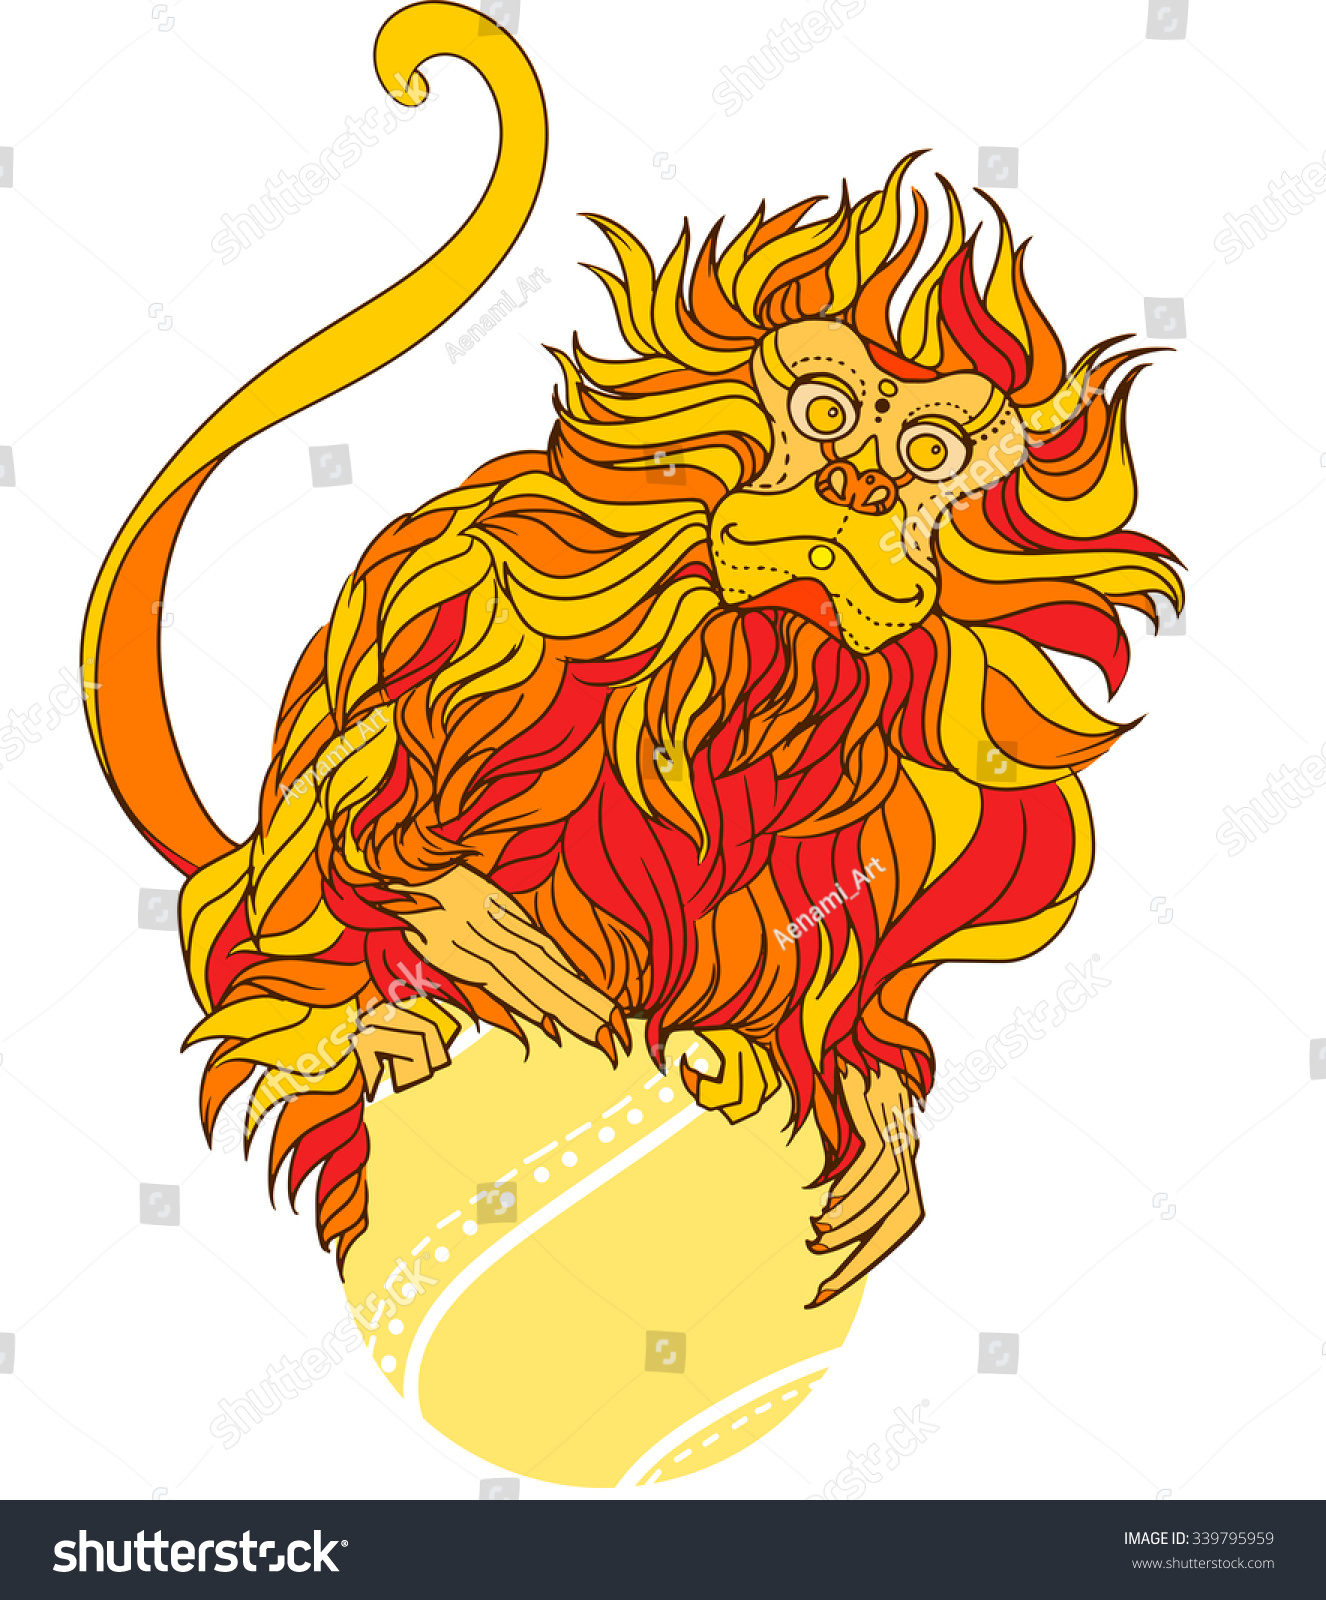 Chinese Calendar Illustration : Vector illustration fire monkey symbol stock